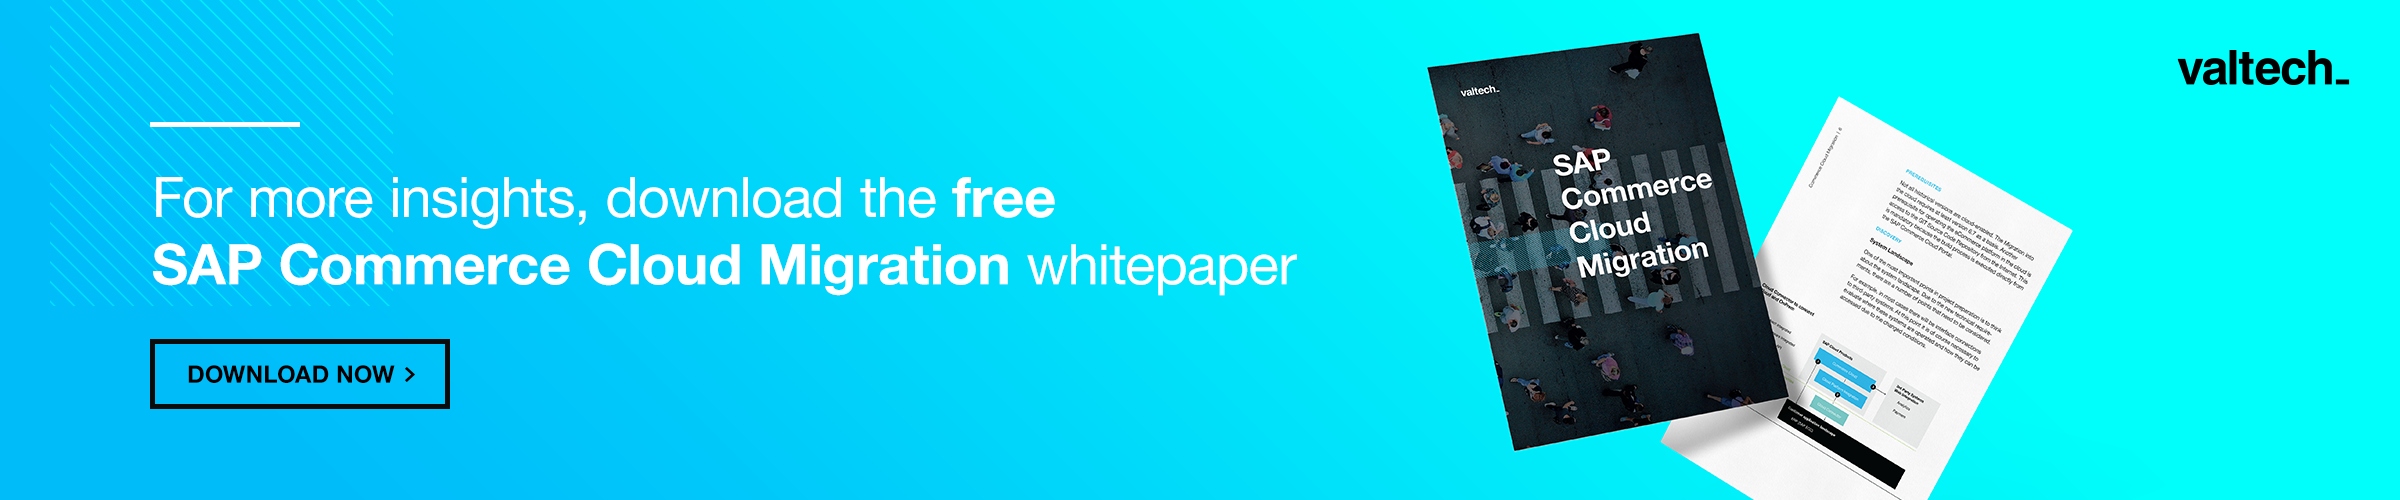 SAP-Whitepaper-Blog-Ad.png